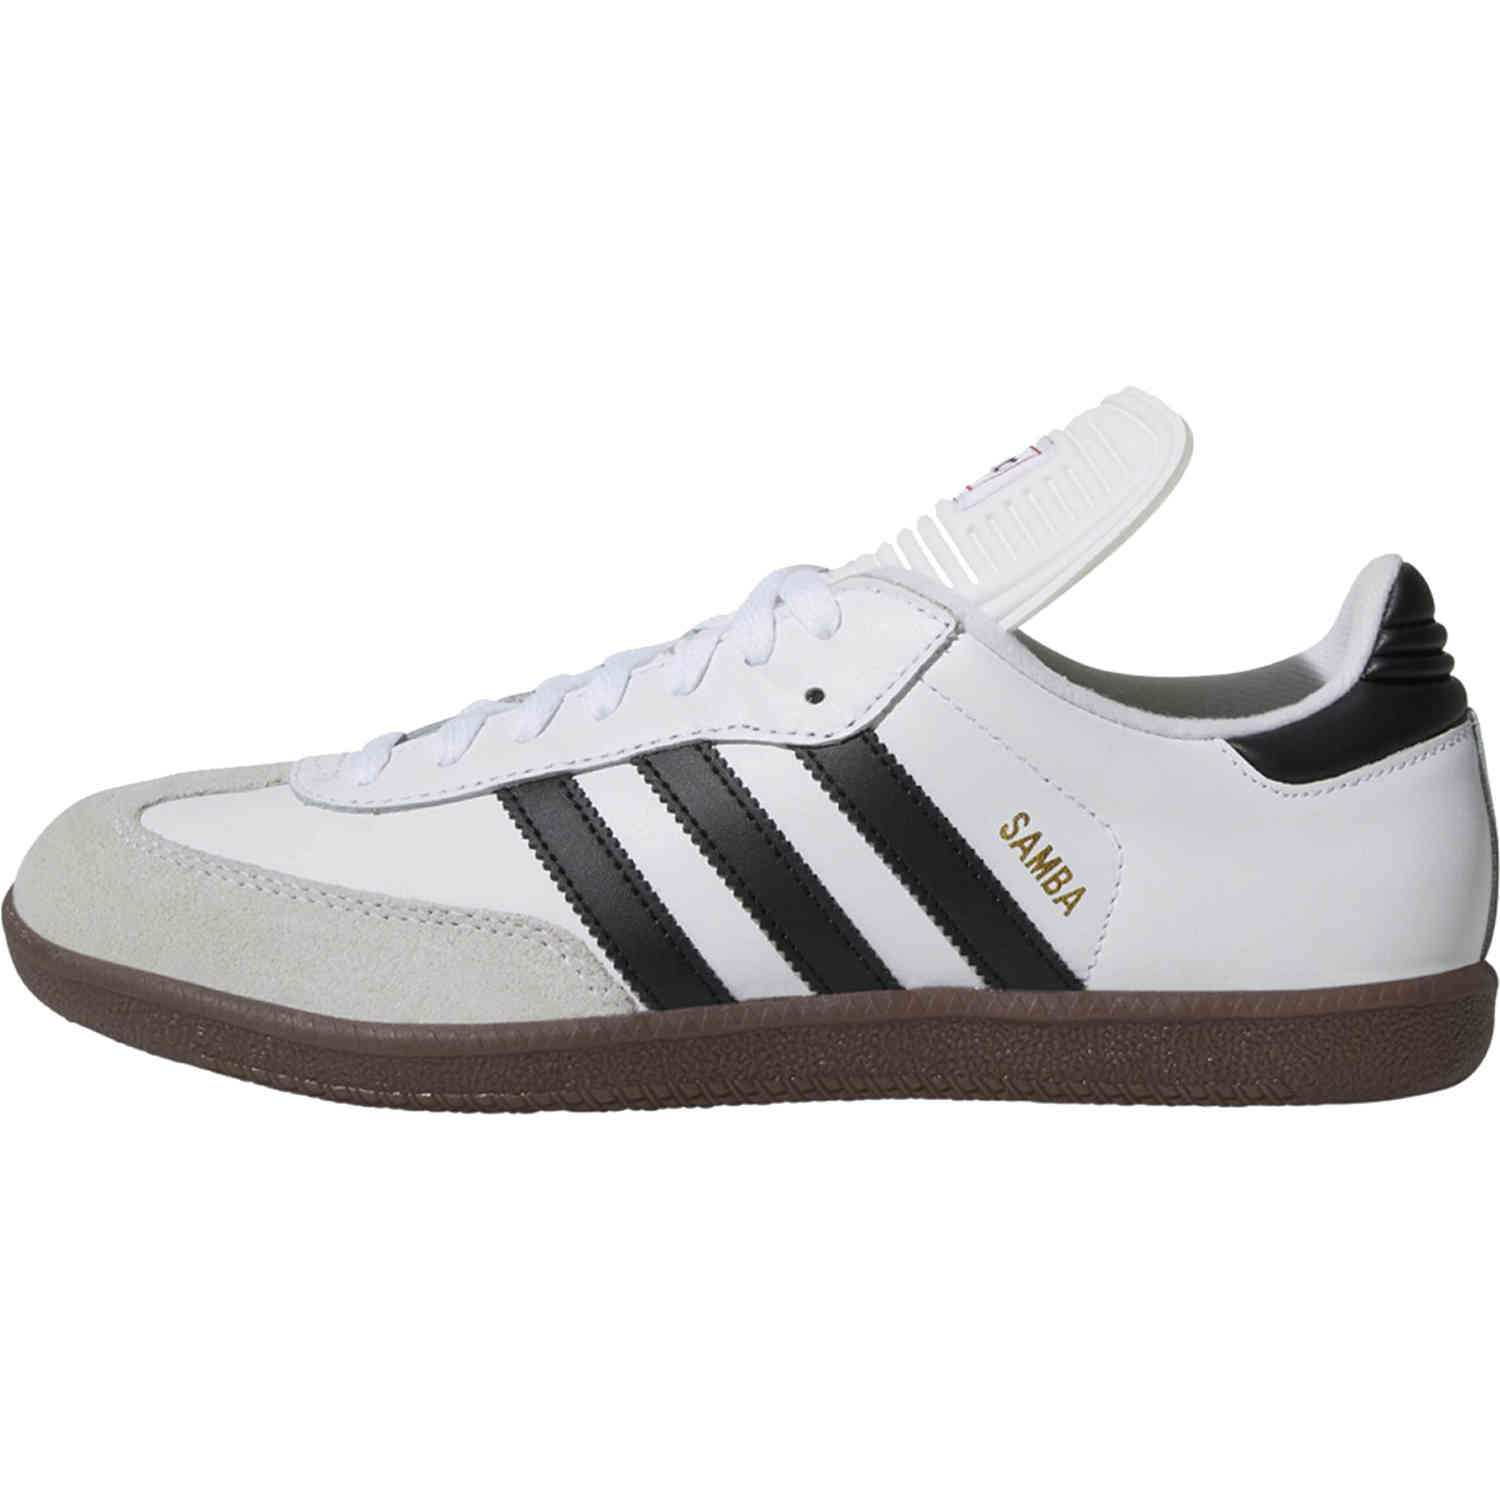 Purchase Excavation Bake  adidas Samba Classic - White/Black - SoccerPro